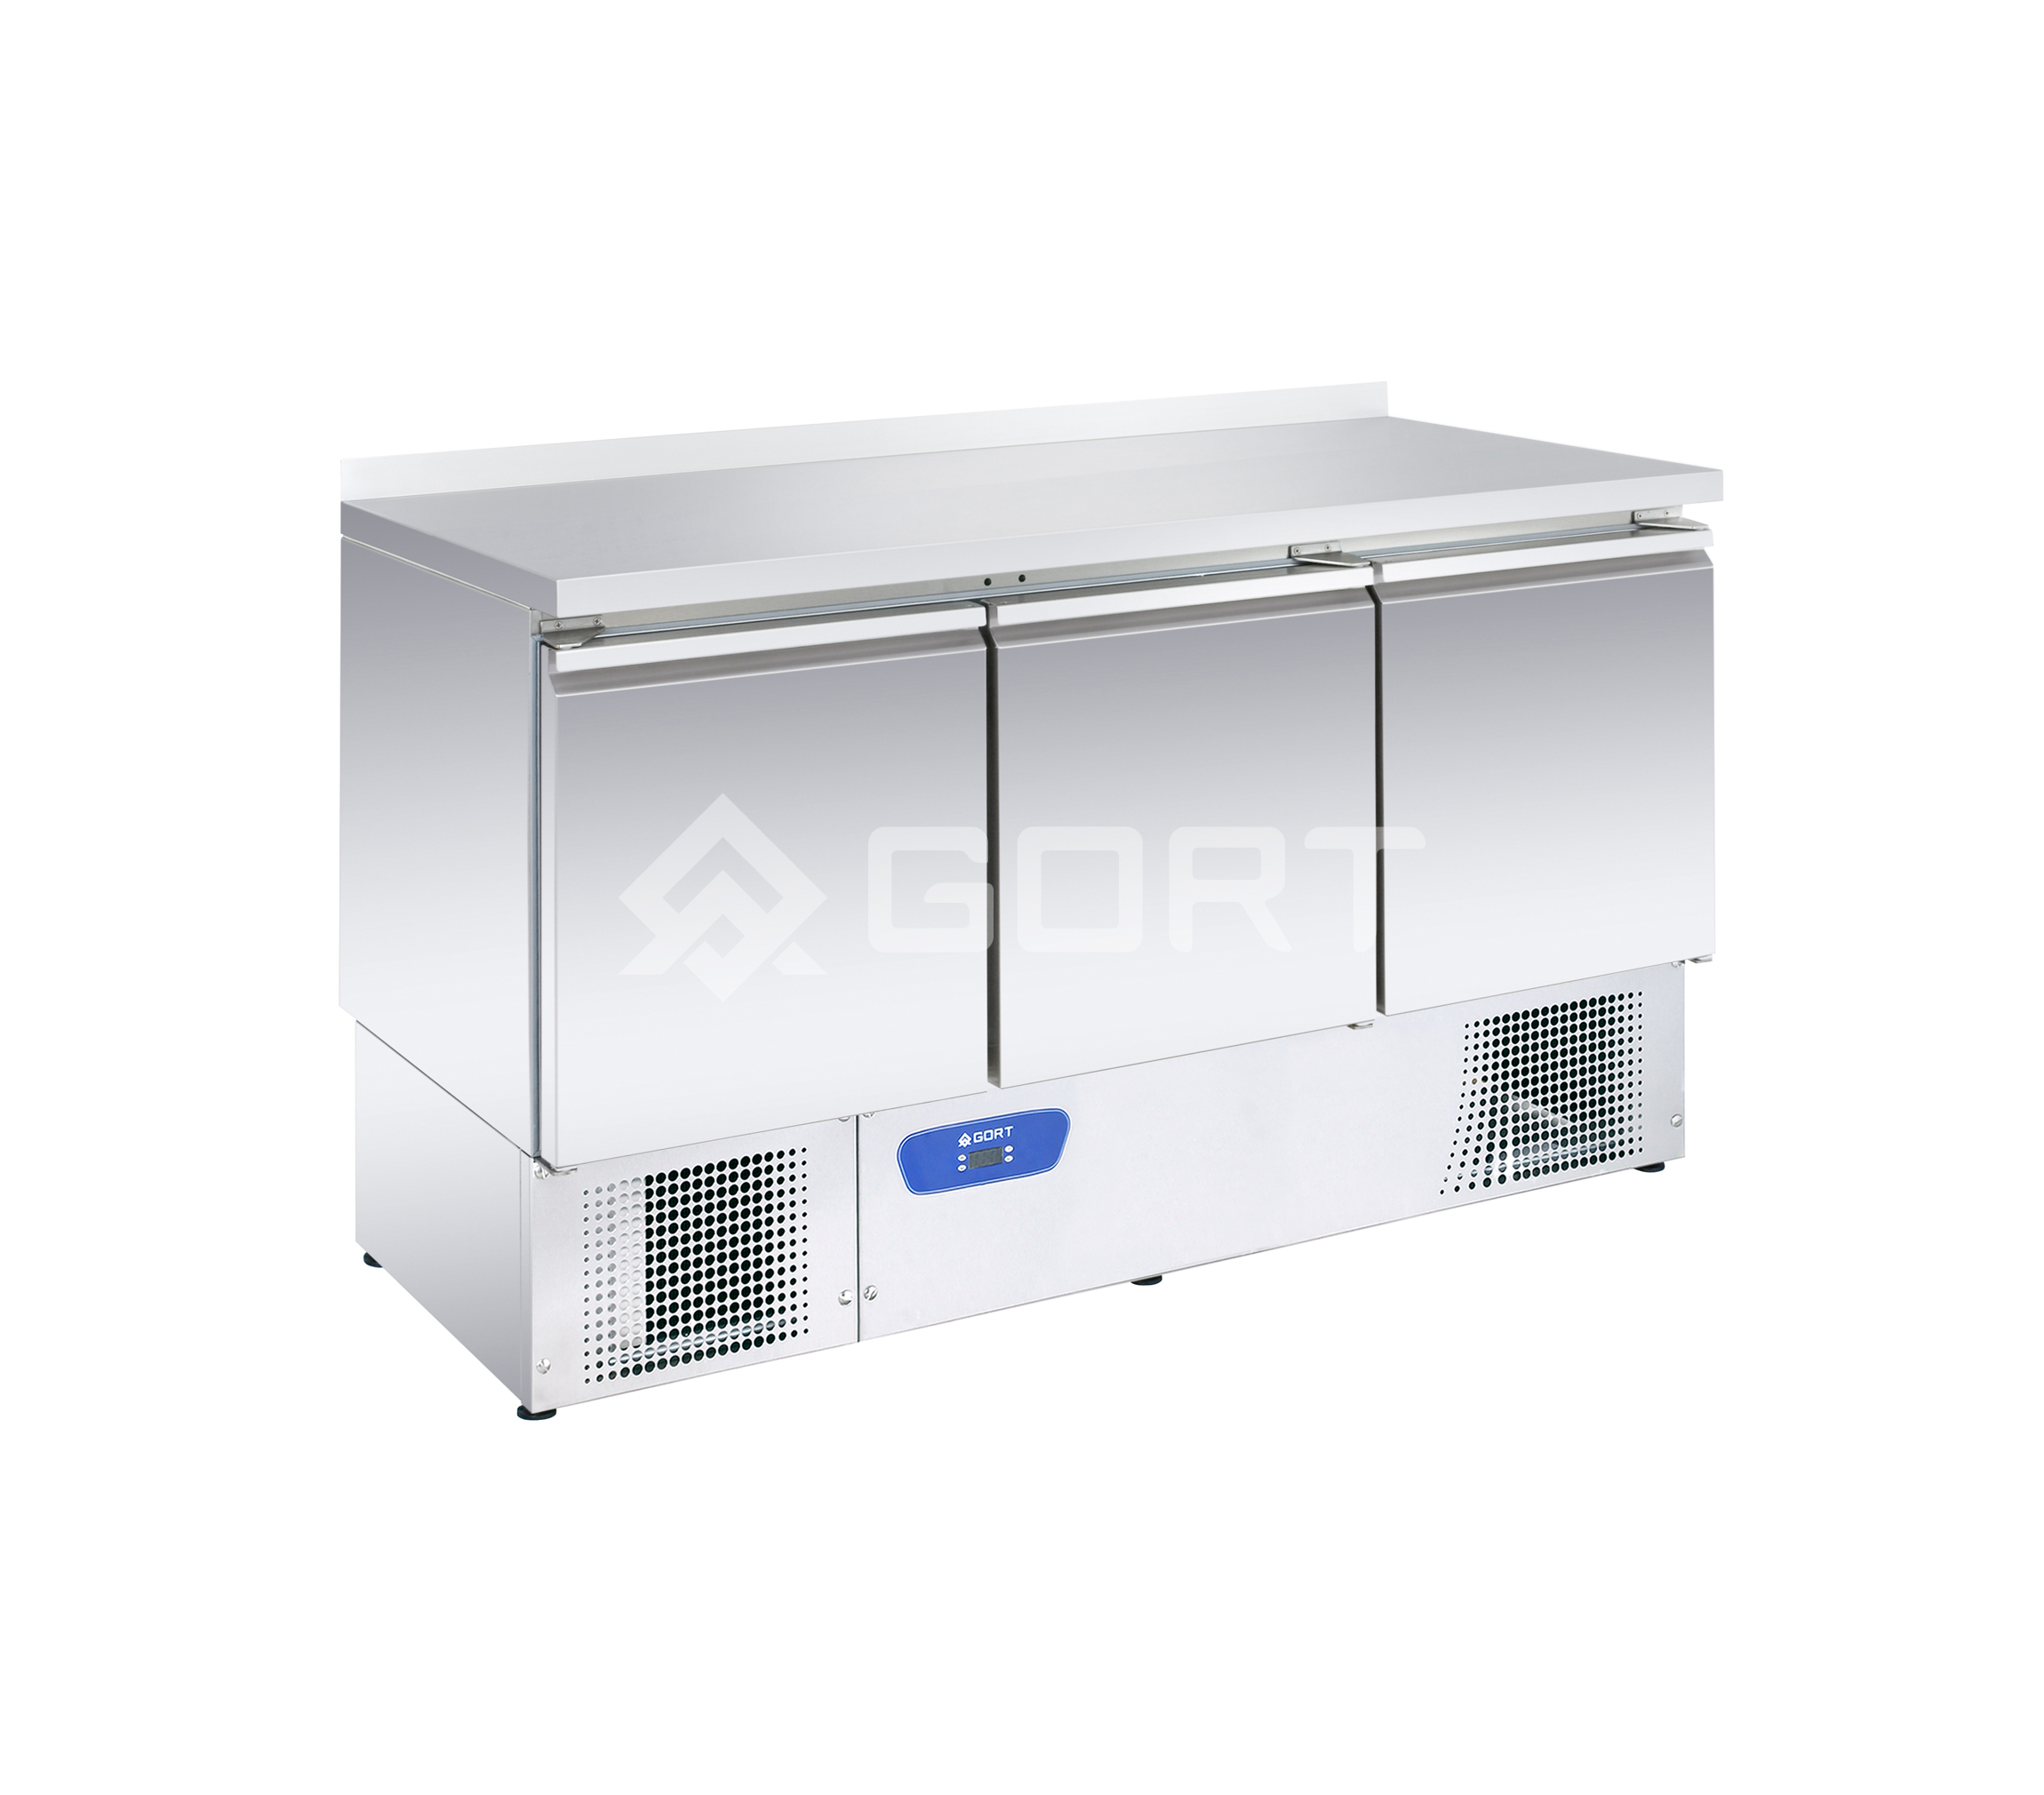 3 door refrigerated counter GN1/1 with compressor at the bottom